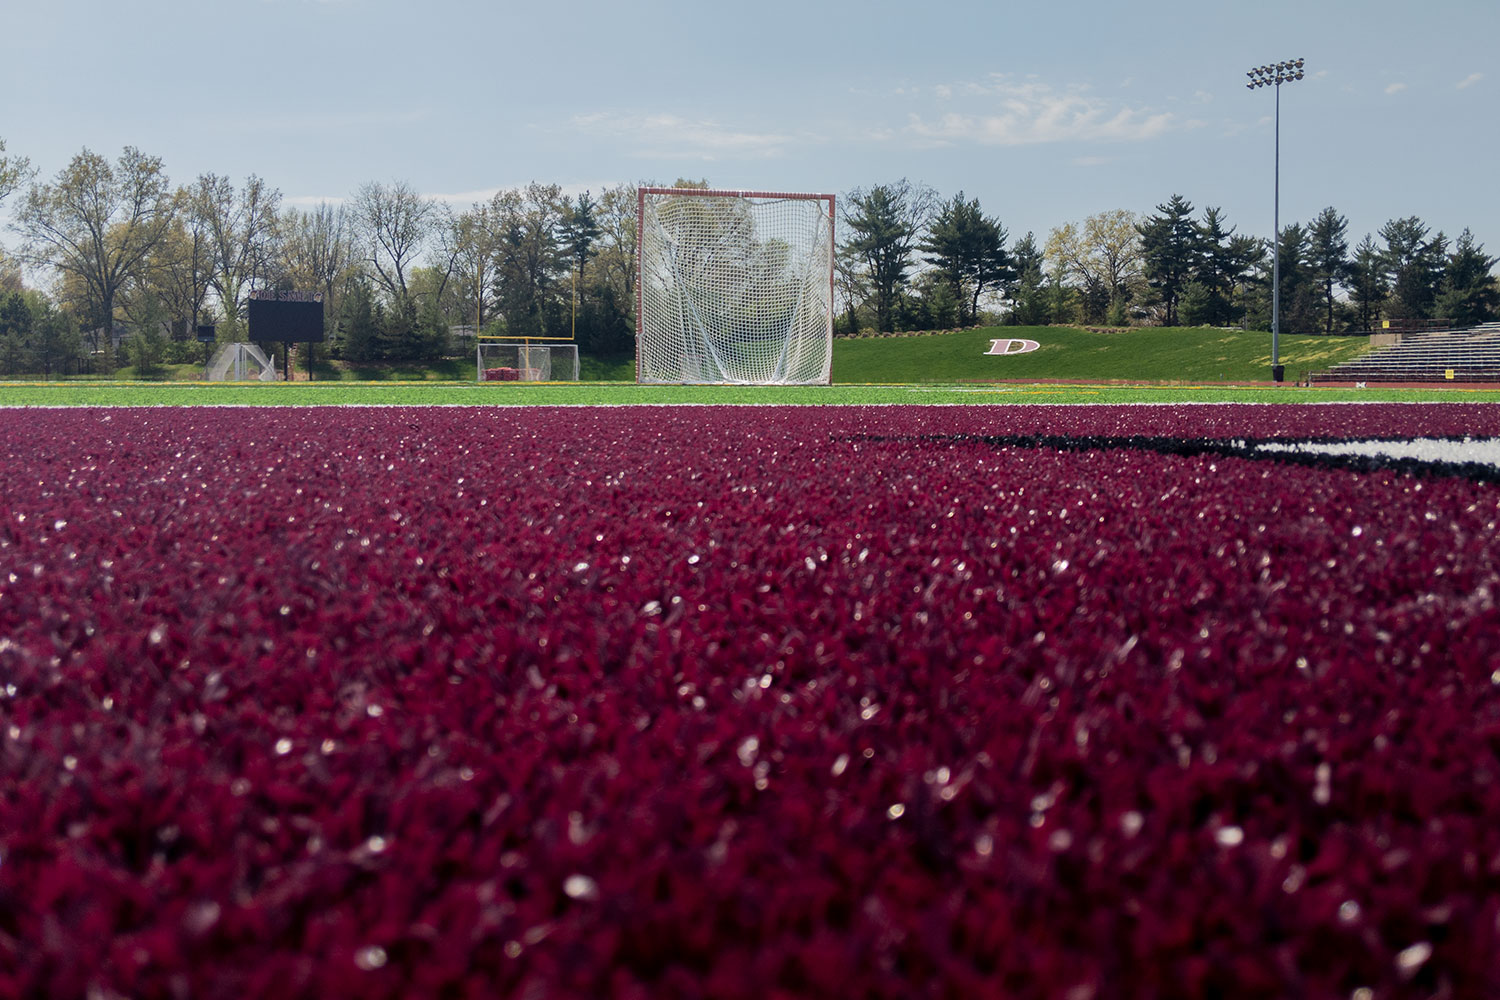 The turf sits empty after MSHSAA cancels the spring sports season.